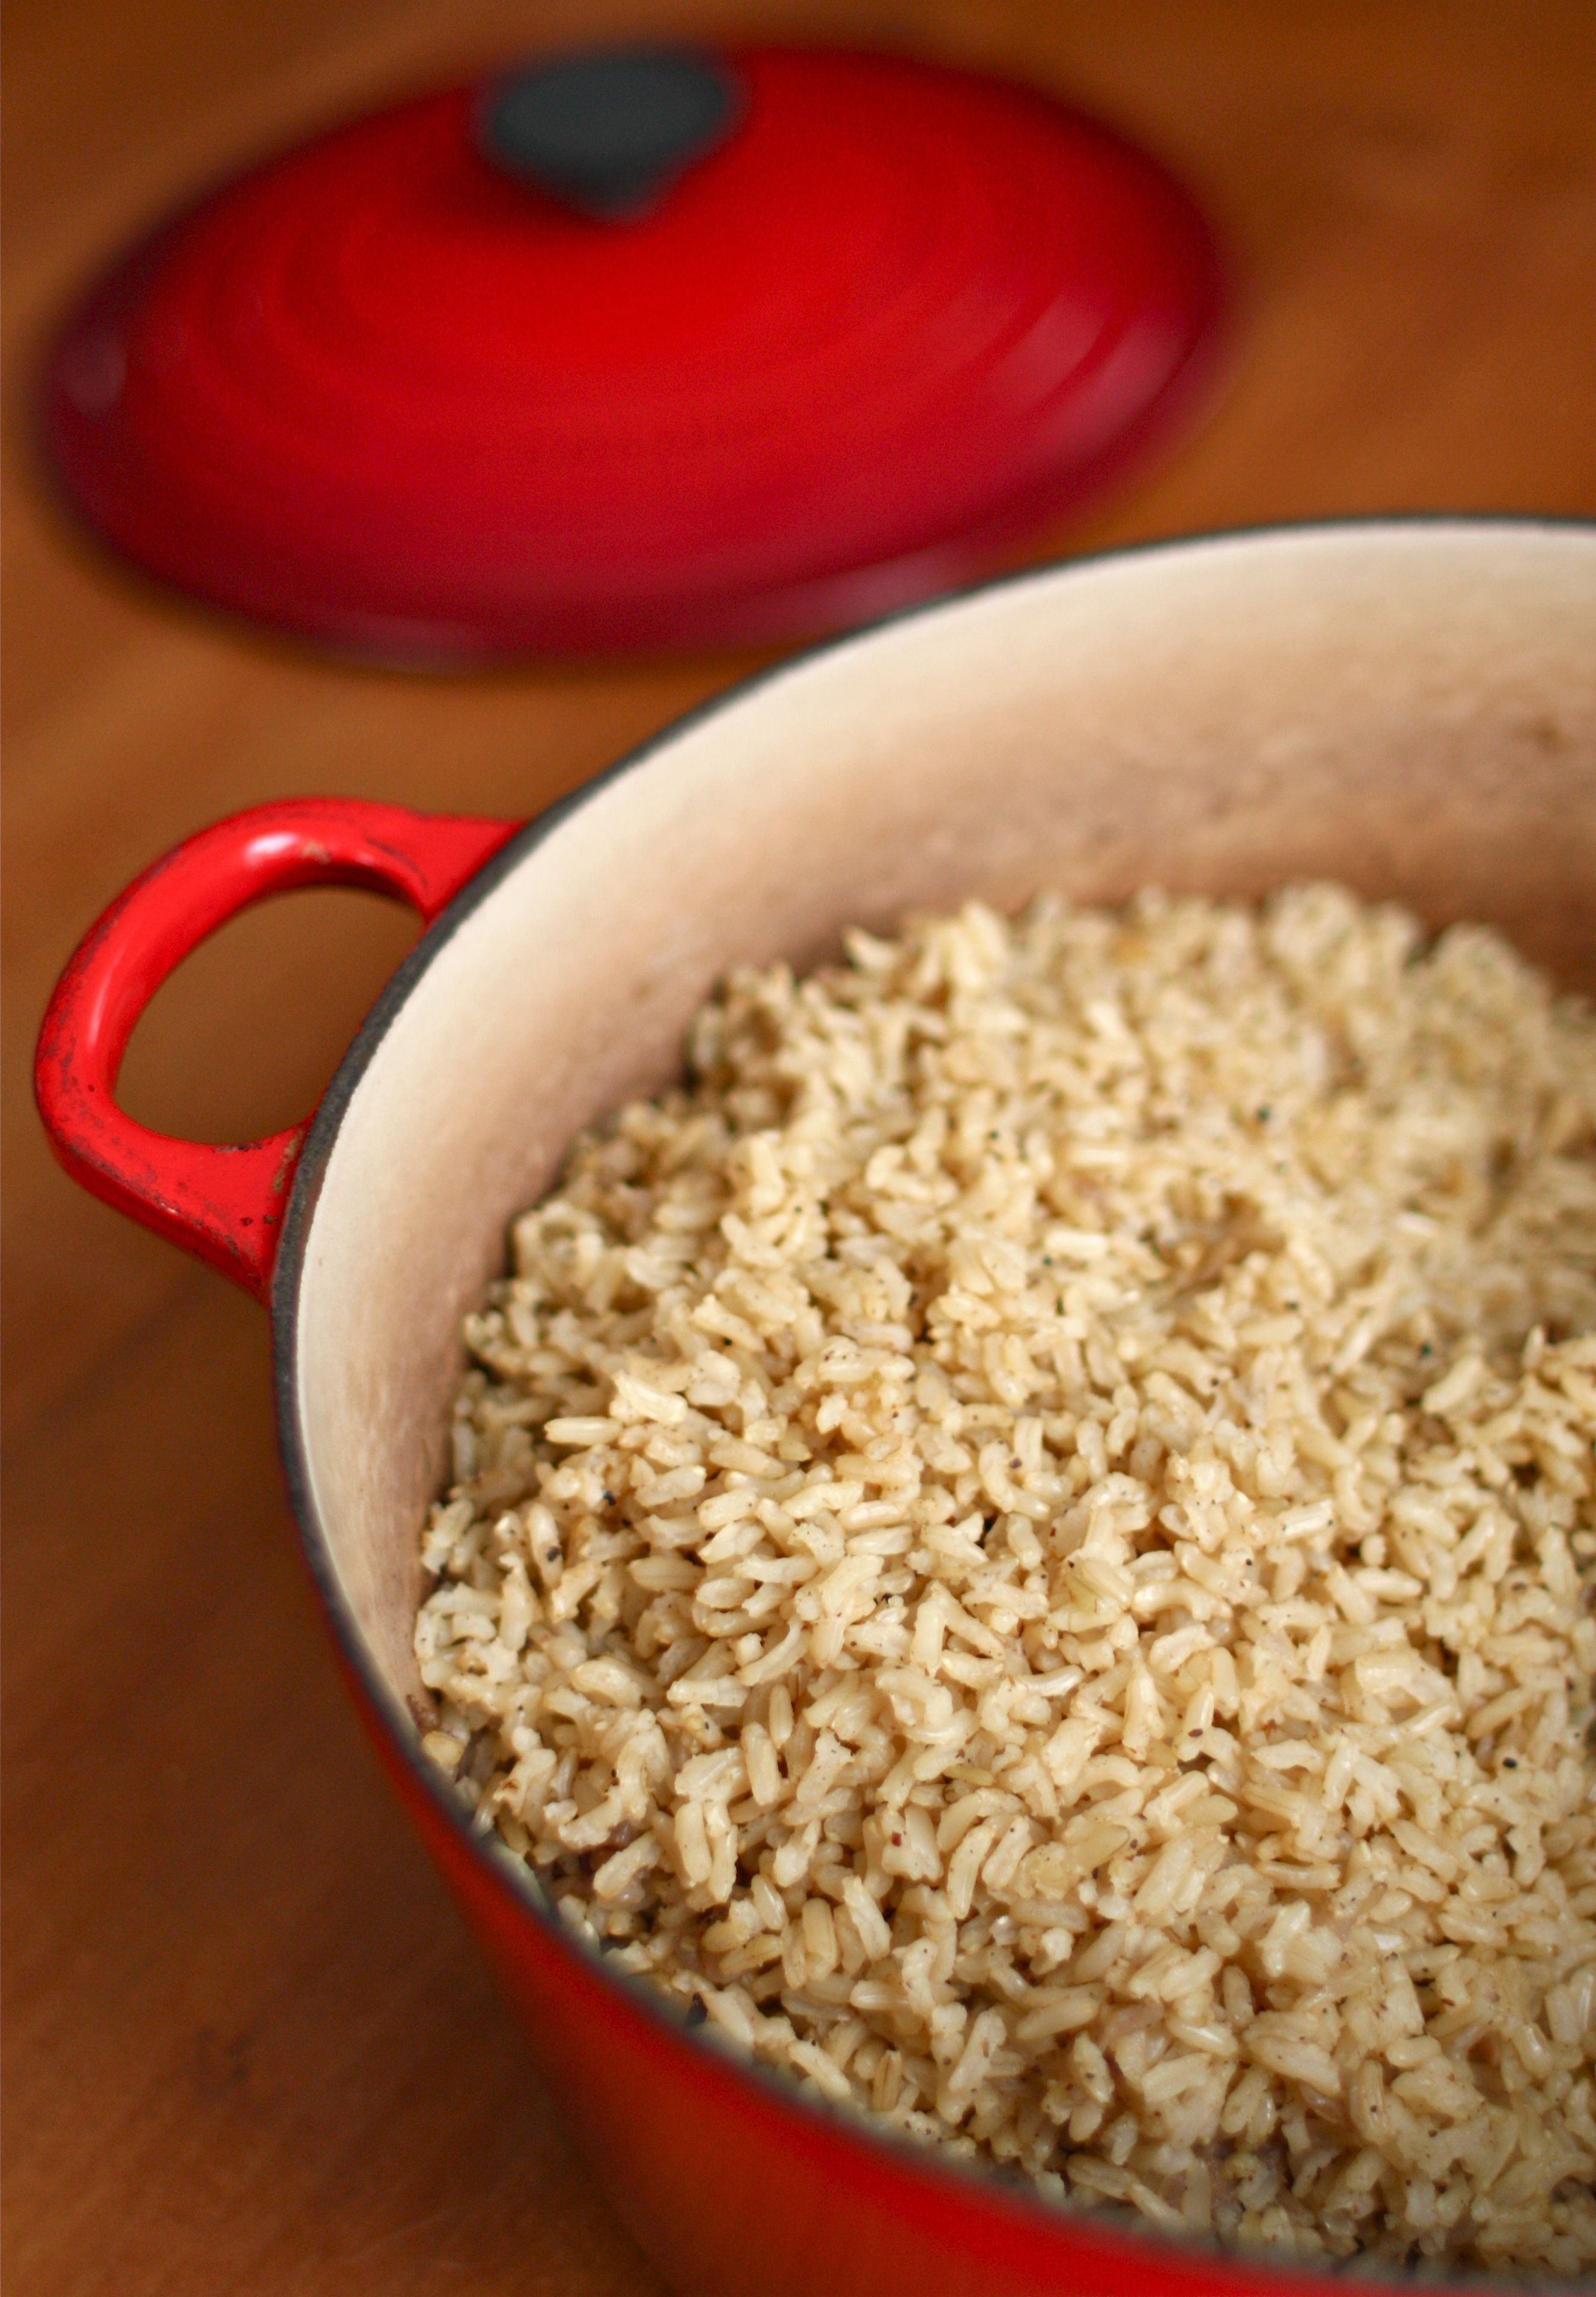 Brown Rice: A Wholesome Snack Or Minimeal Alternative